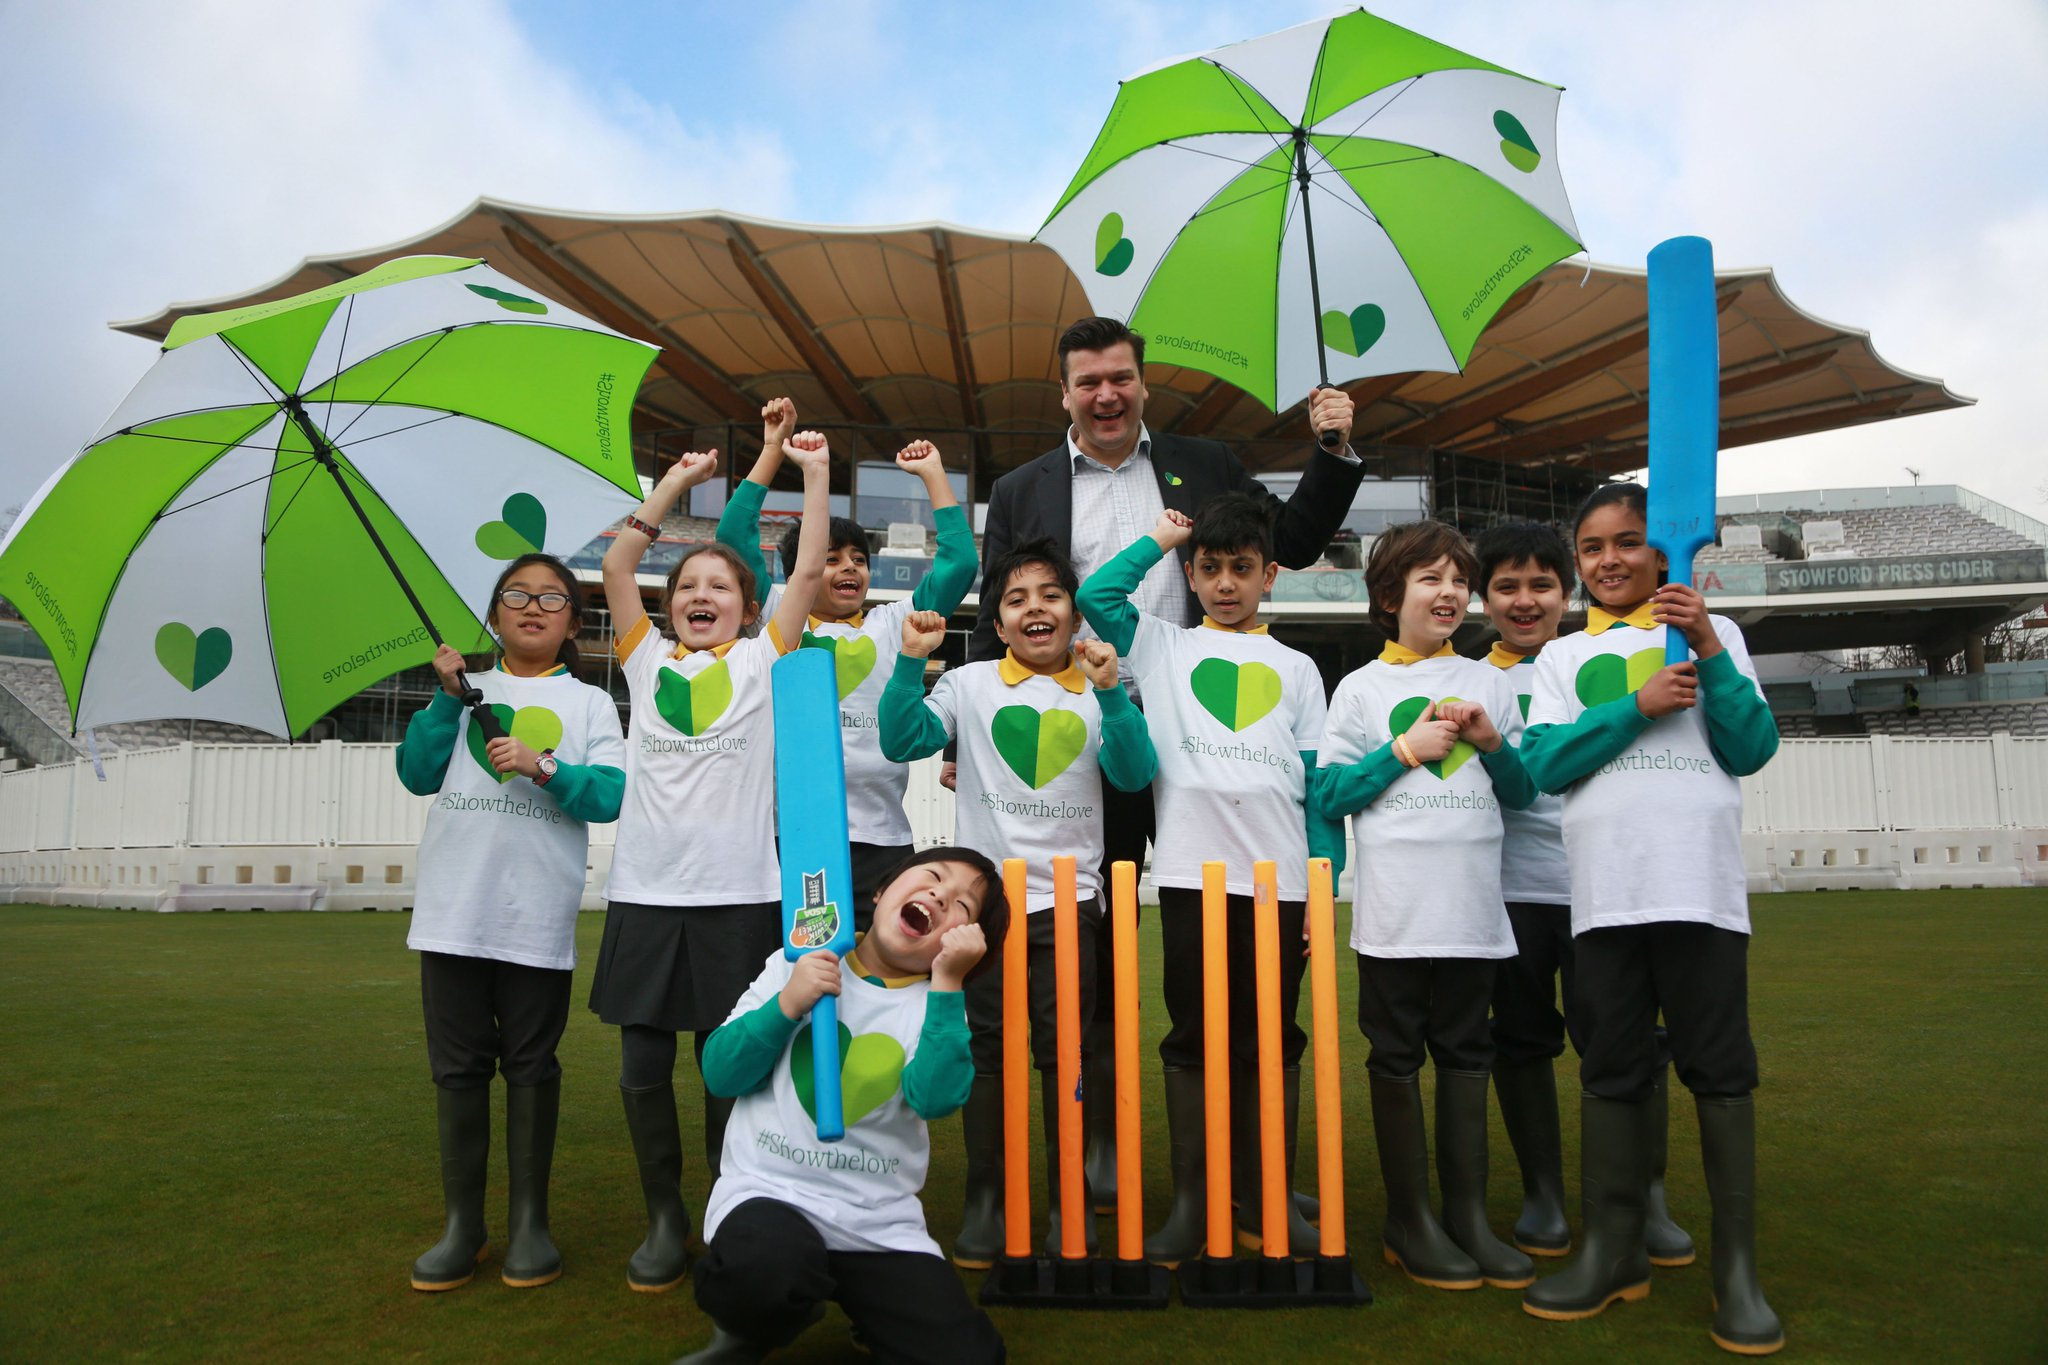 Pitches among places devastated by weathers linked to #climatechange @homeofcricket goes 100% renewable #ShowTheLove https://t.co/lmBY5caKAA https://t.co/2cBG6bTdW6